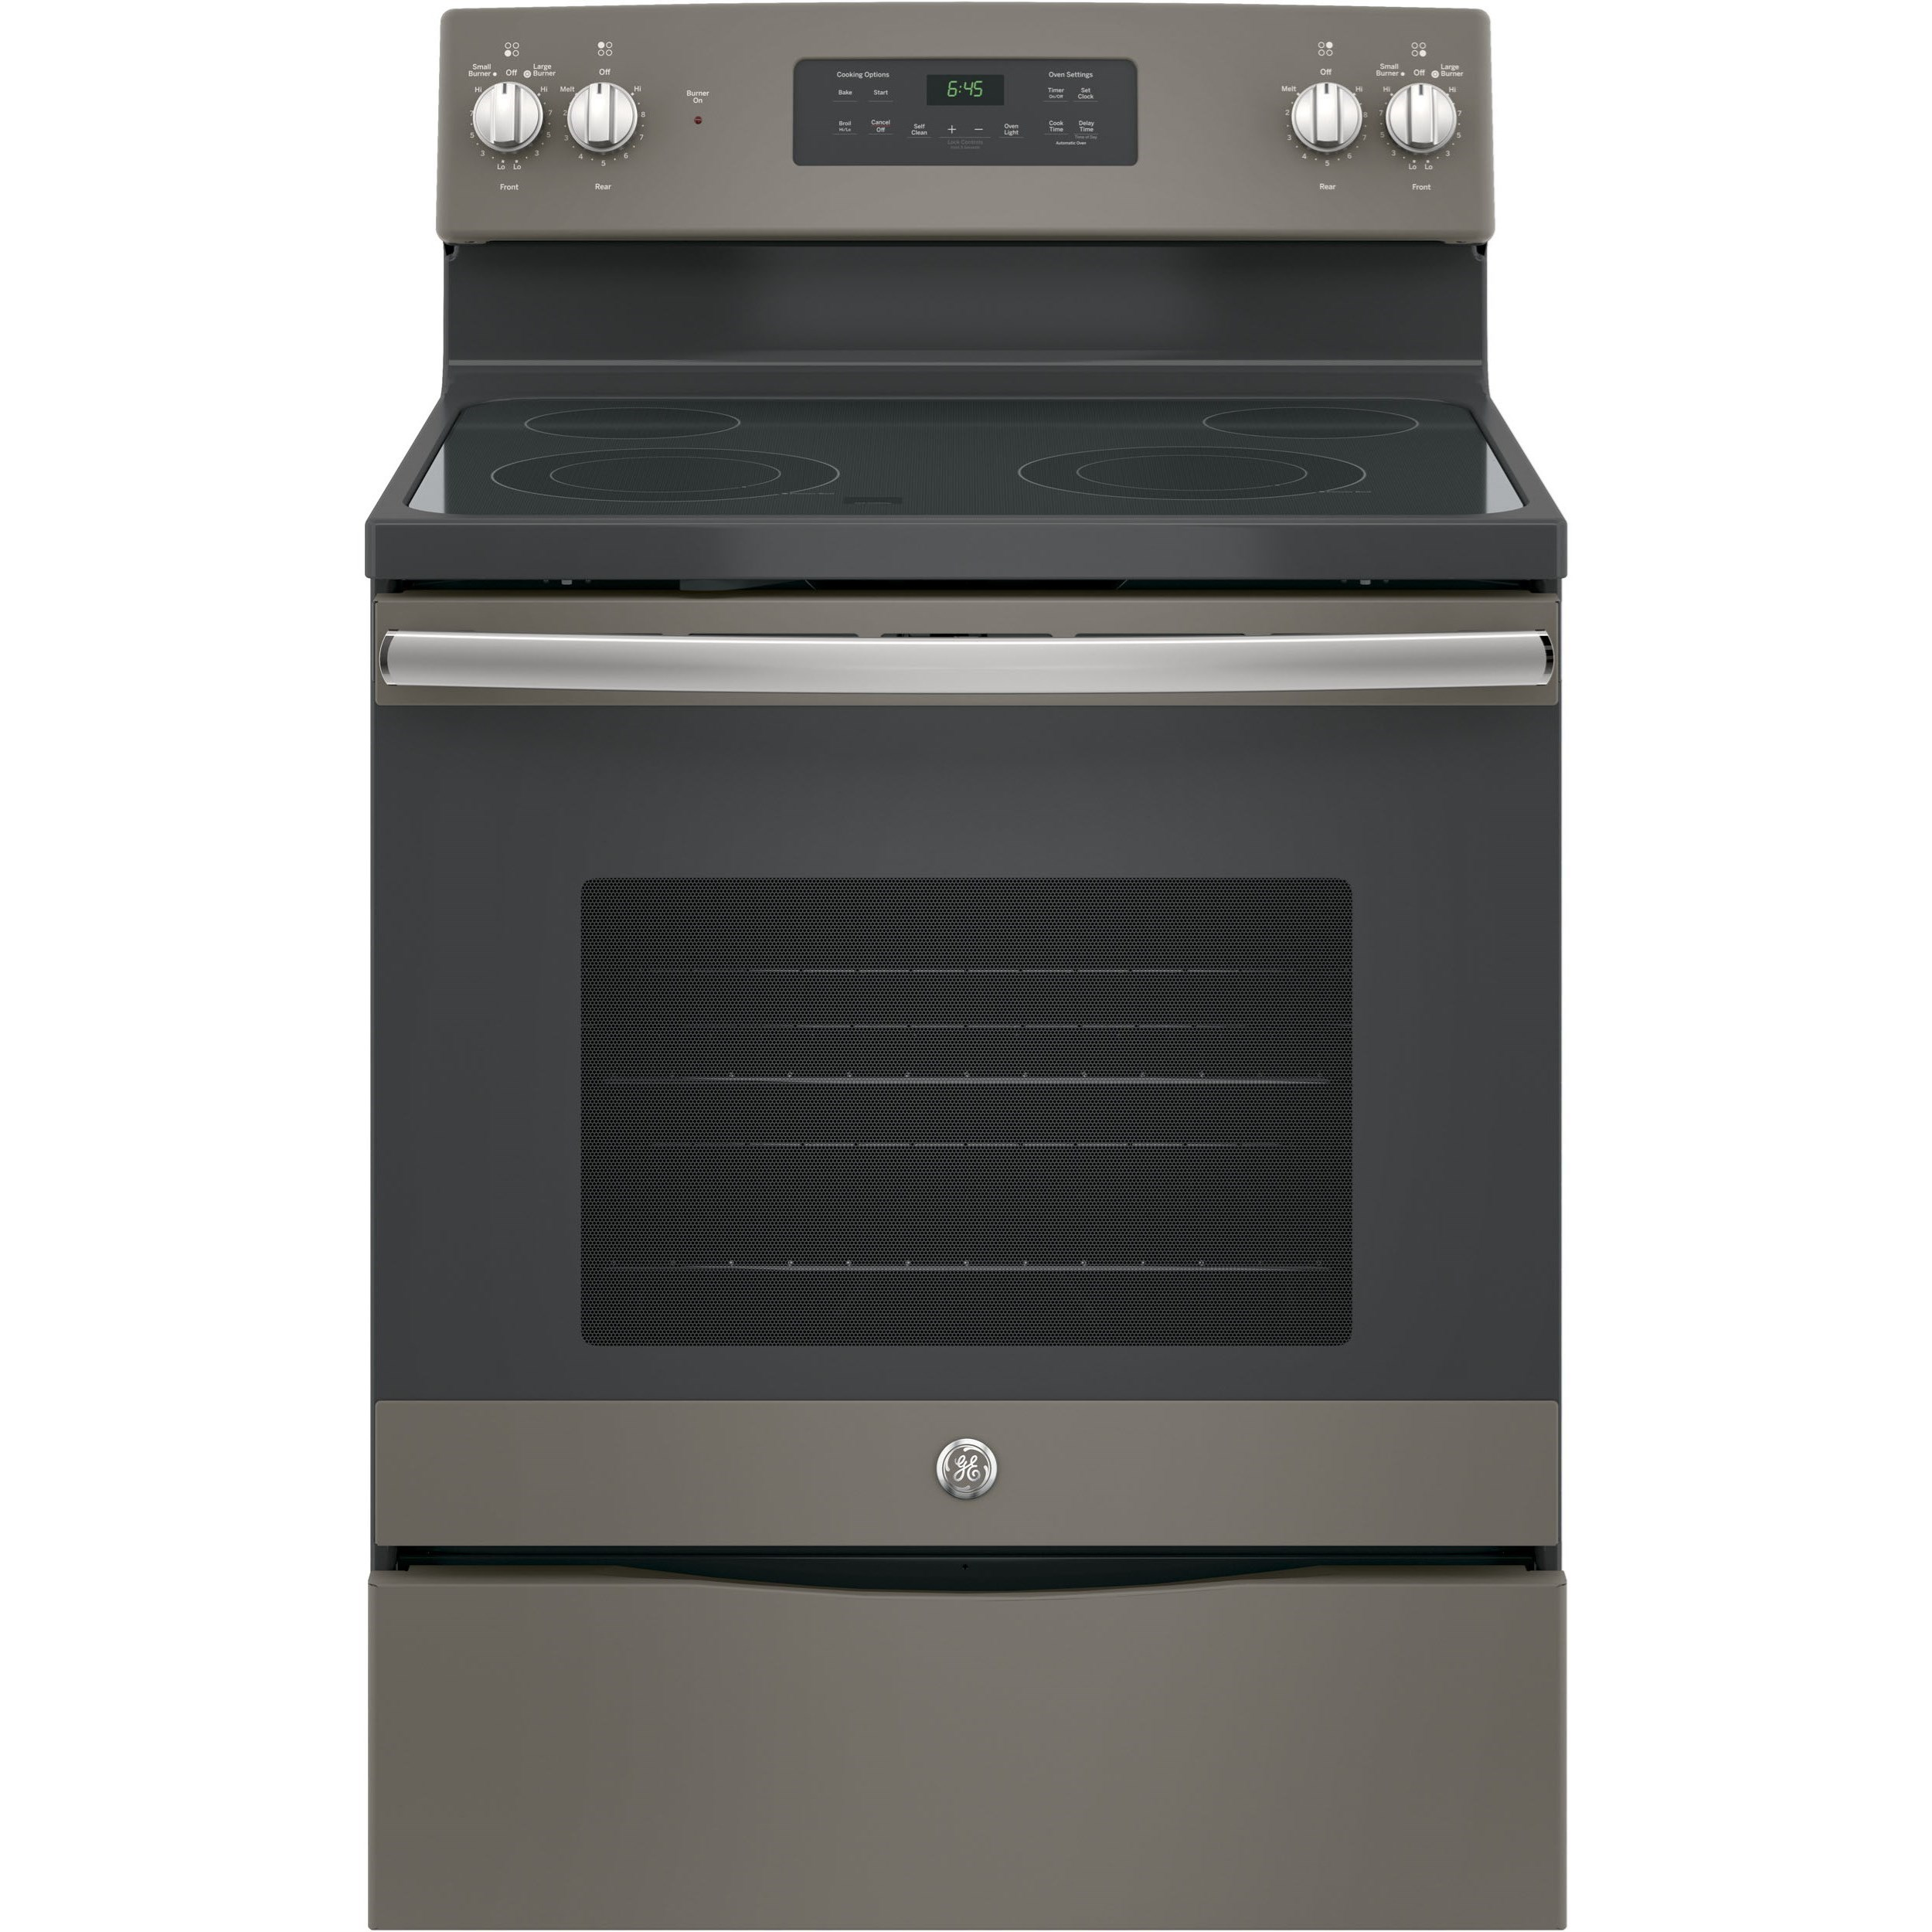 """GE Electric Ranges 30"""" Free-Standing Electric Range by GE Appliances at VanDrie Home Furnishings"""